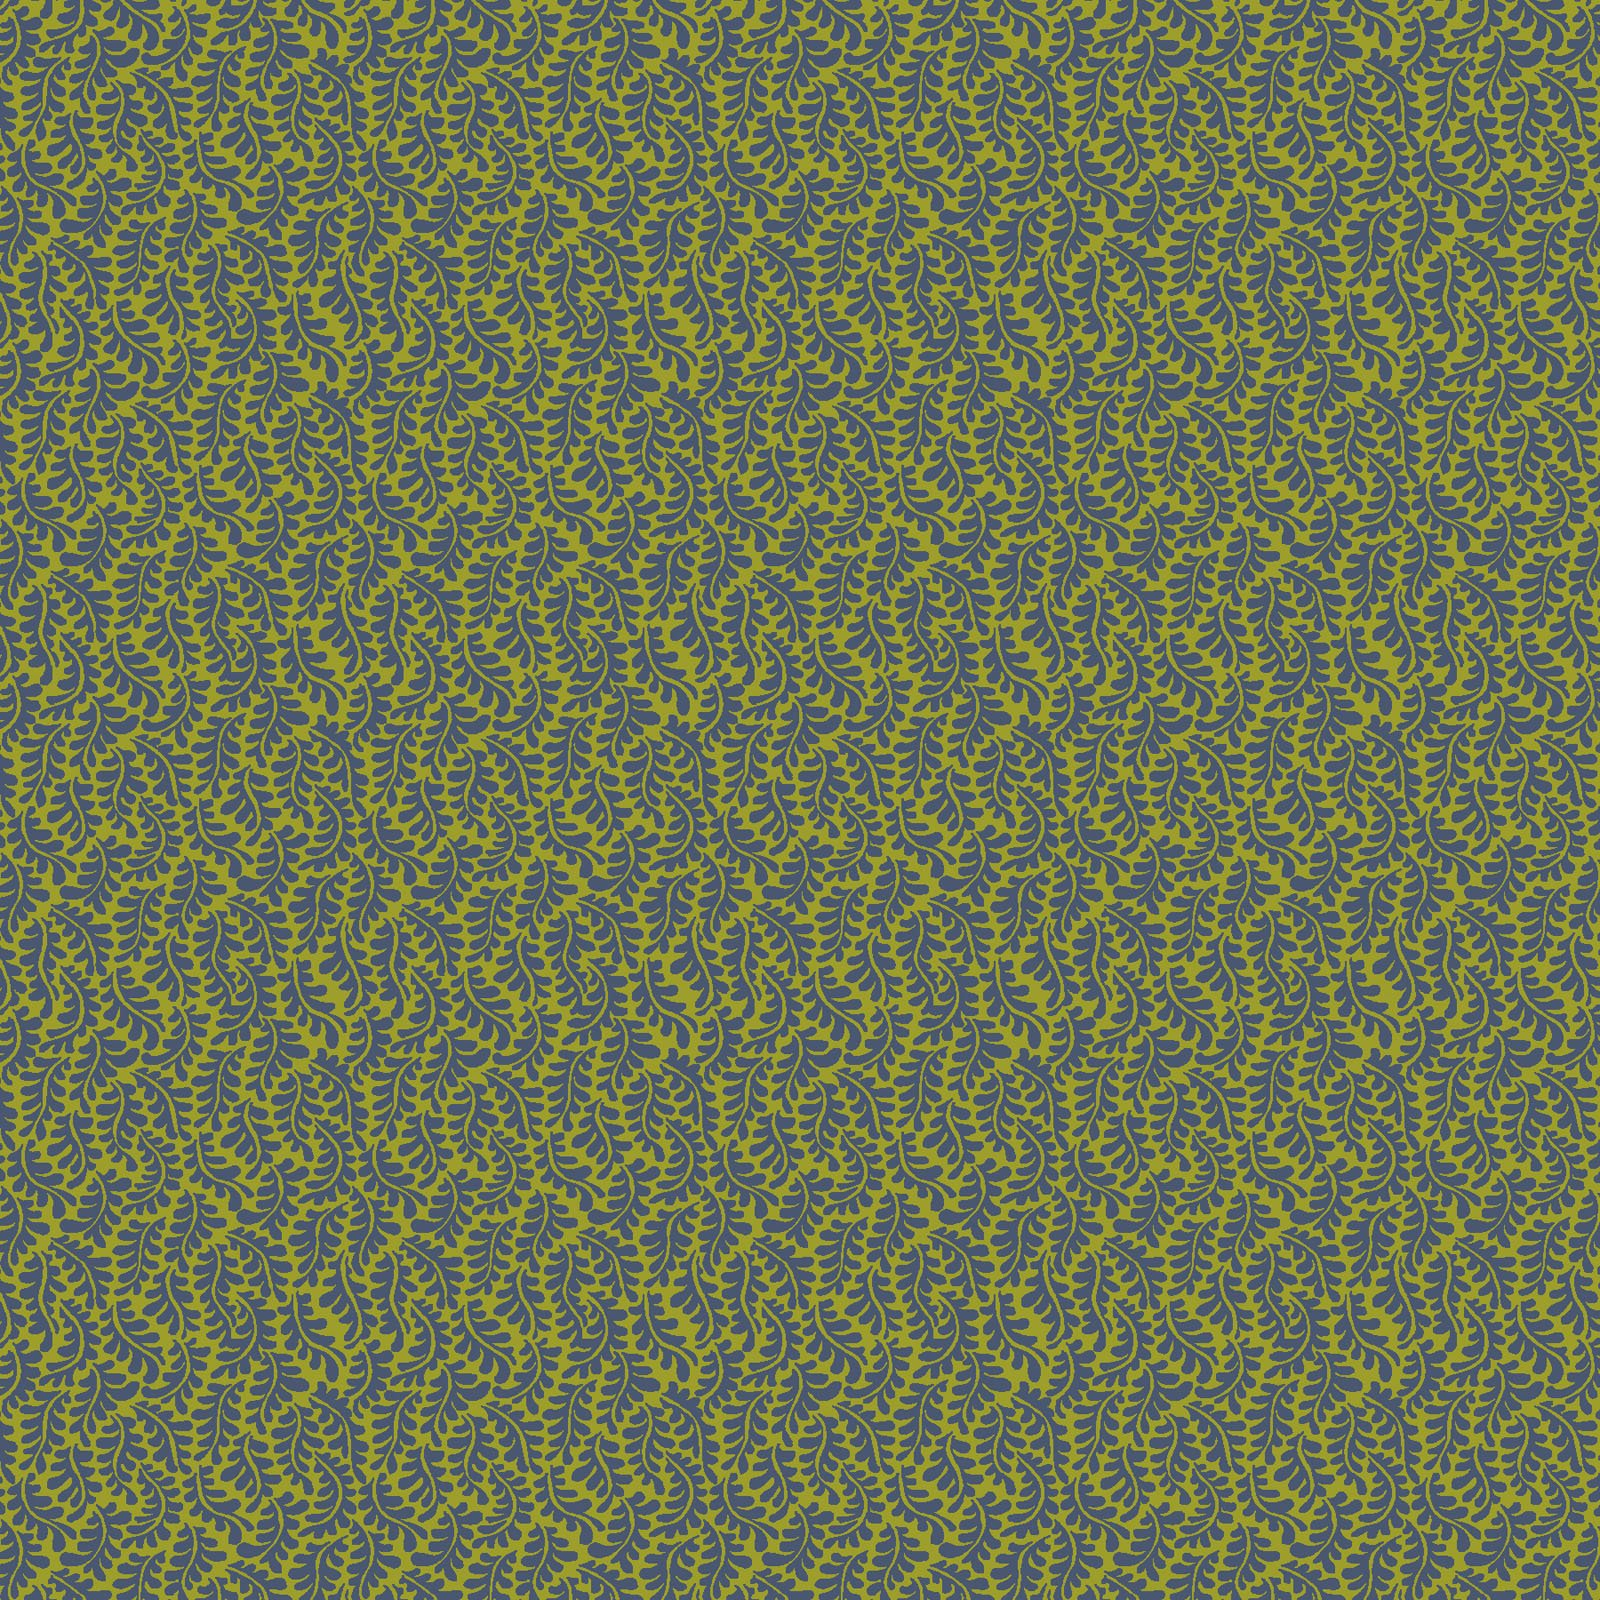 EESC-9878 GB - BELLE EPOQUE BY MAYWOOD STUDIO MICRO LEAVES GREEN BLUE - ARRIVING JANUARY 2021